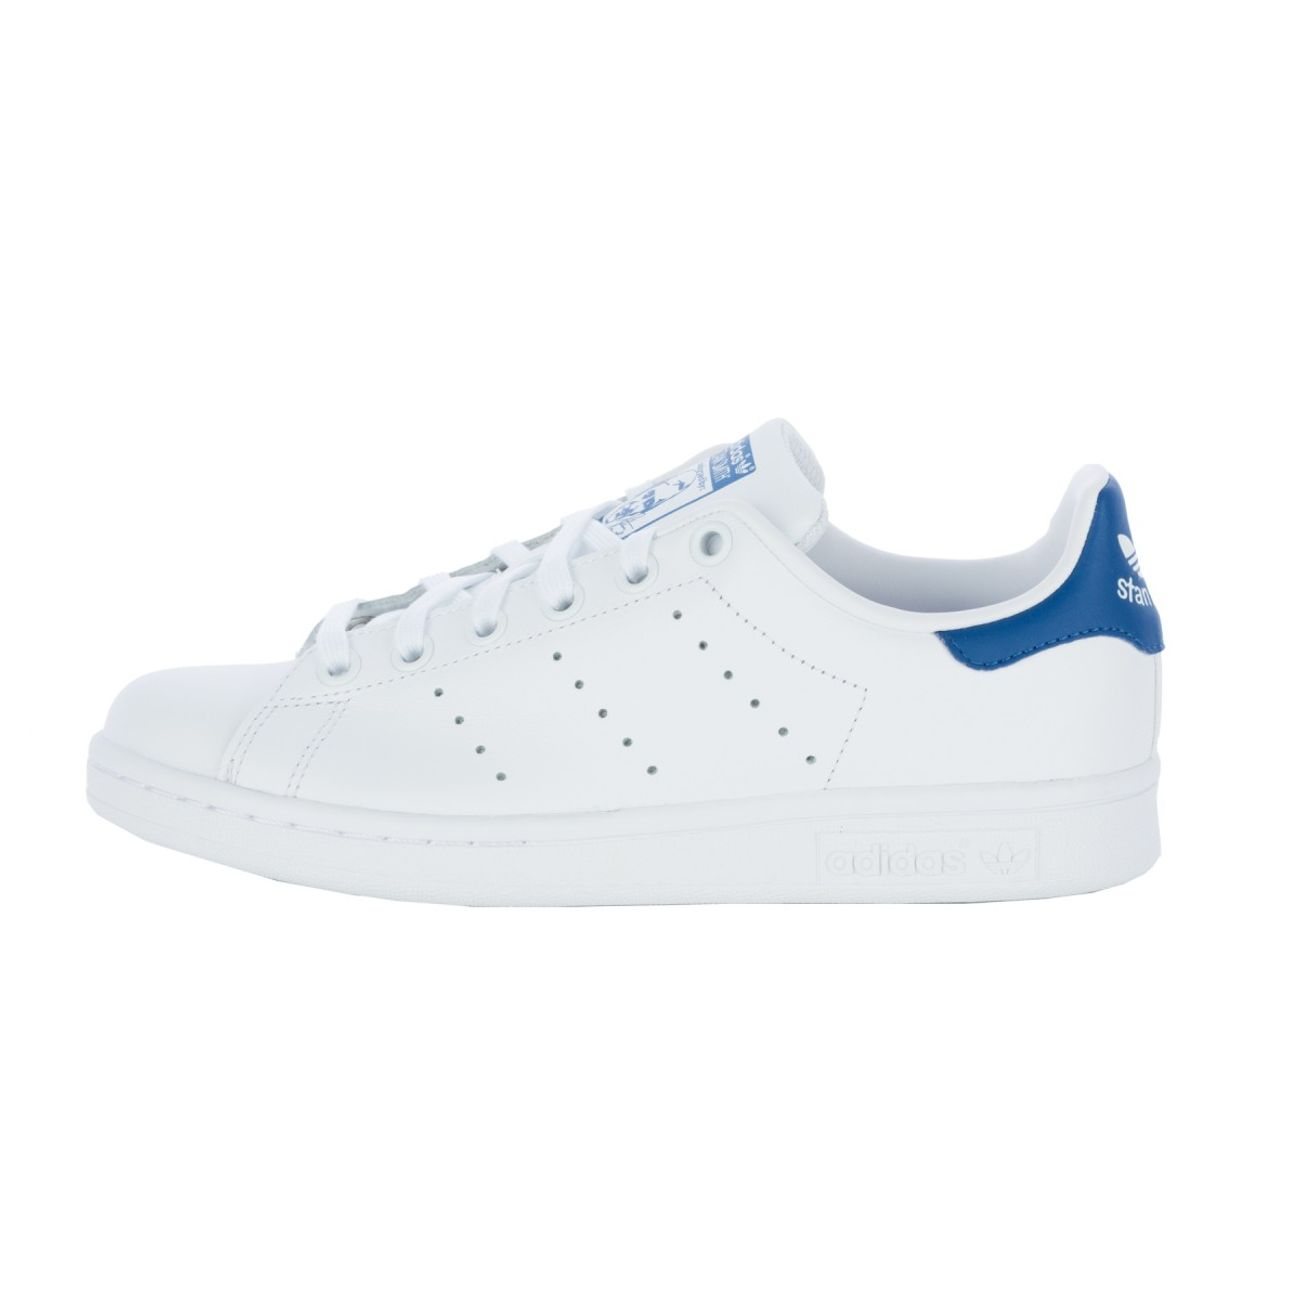 Mode- Lifestyle enfant ADIDAS ORIGINALS Basket adidas Originals Stan Smith Junior - S74778